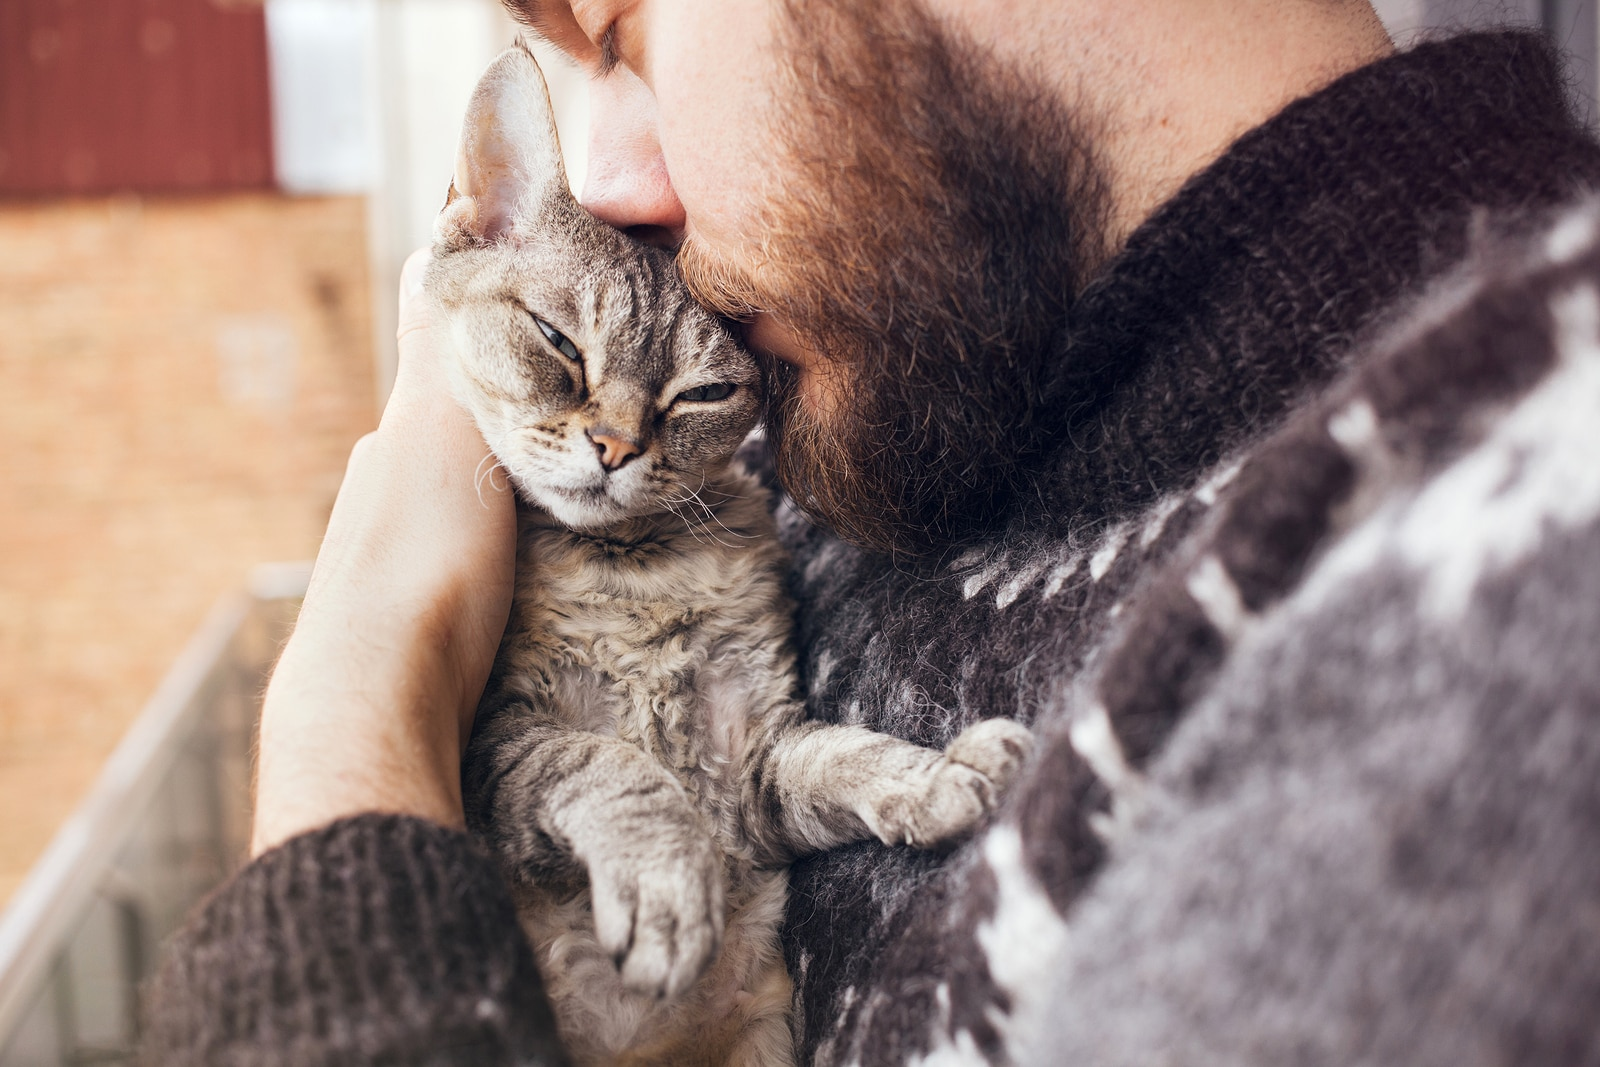 Bearded man hugging a gray cat closely to his chest.